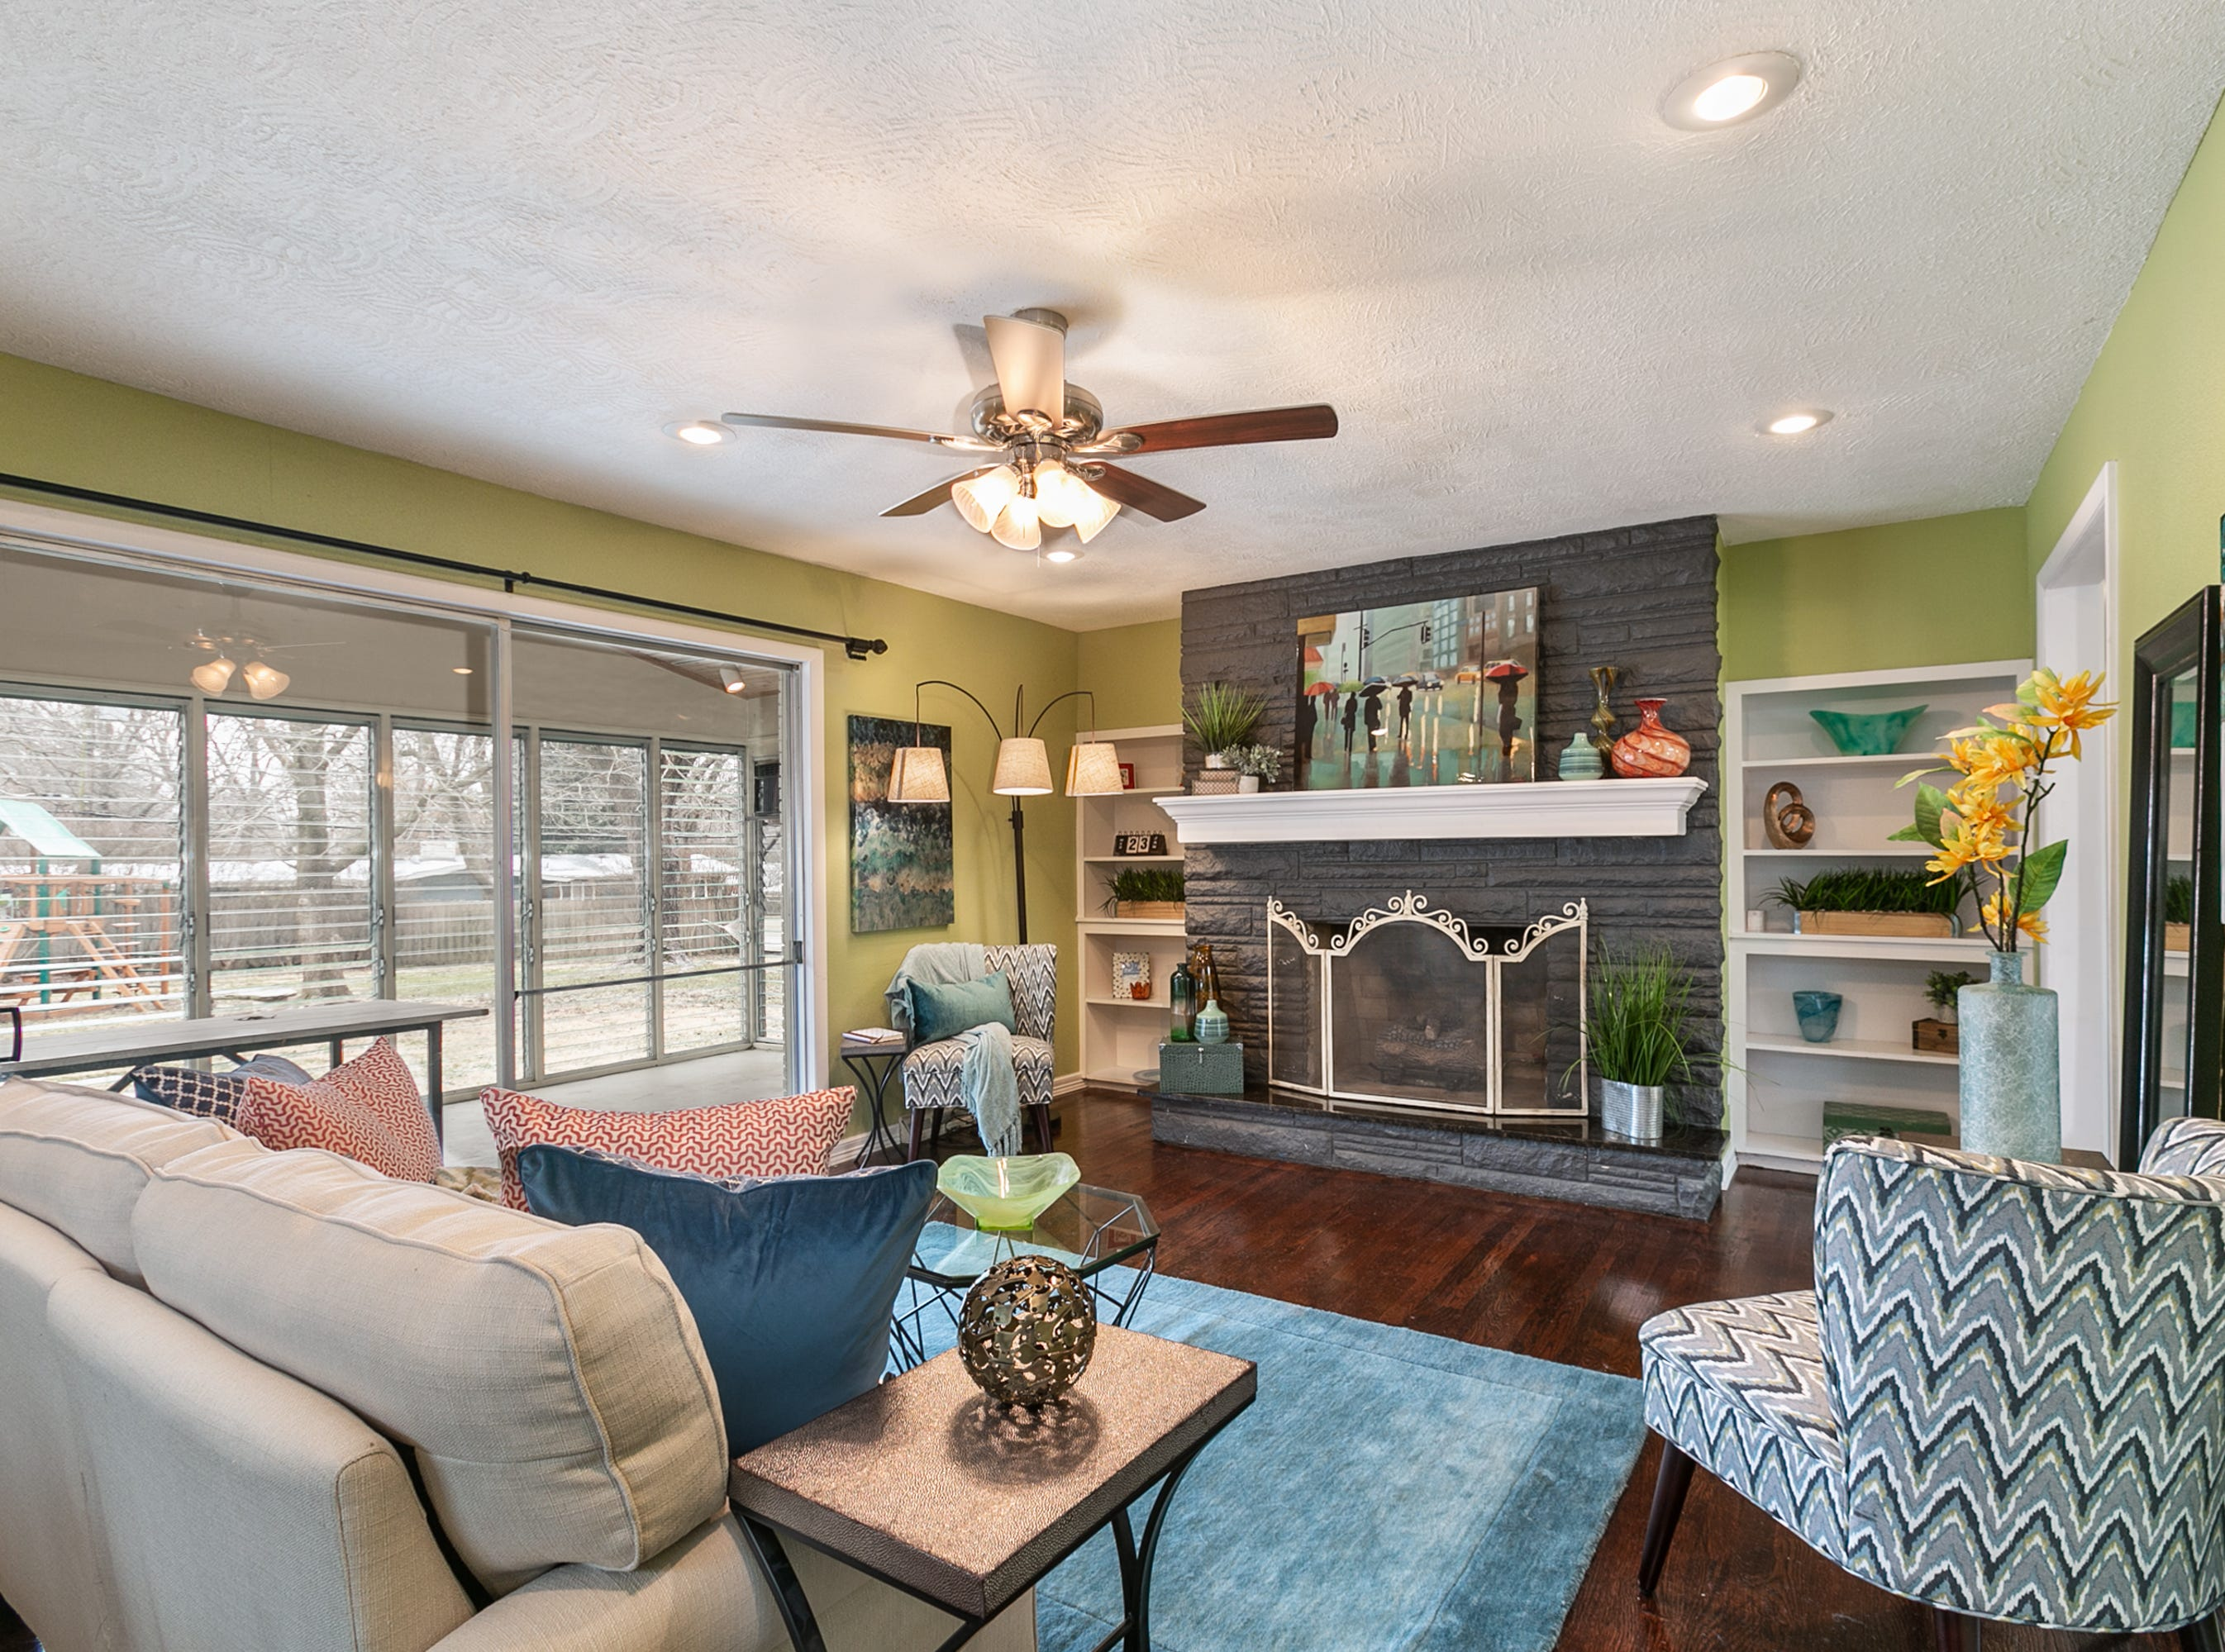 The den features a large brick fireplace and loads of sunlight, thanks to large sliding doors that open onto the sun porch. Tile was replaced with hardwoods, which were finished to tie in with the original hardwoods found elsewhere in the house.